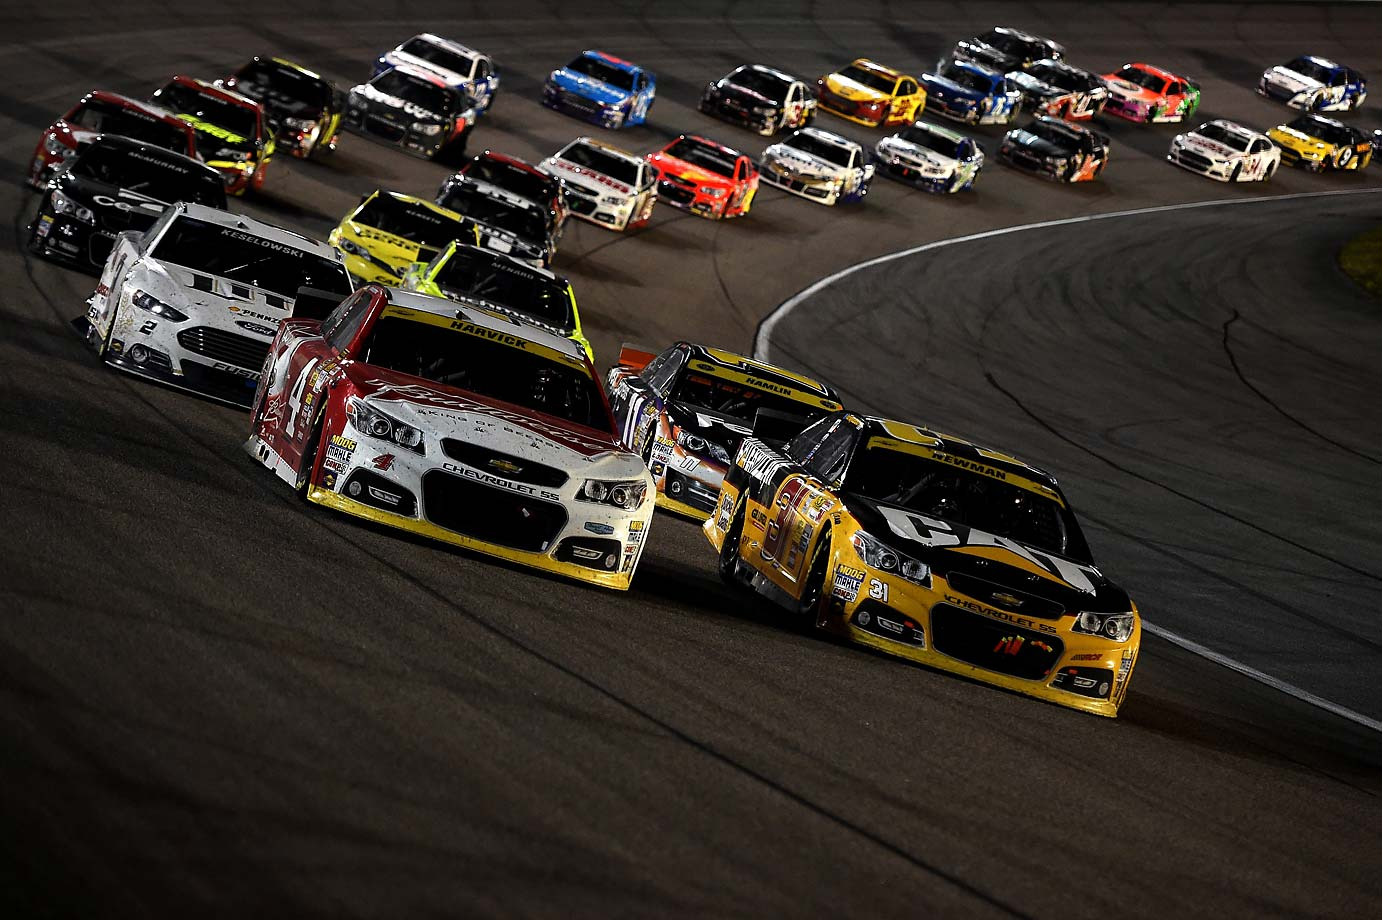 Kevin Harvick leads a pack of cars during the 2014 season finale.